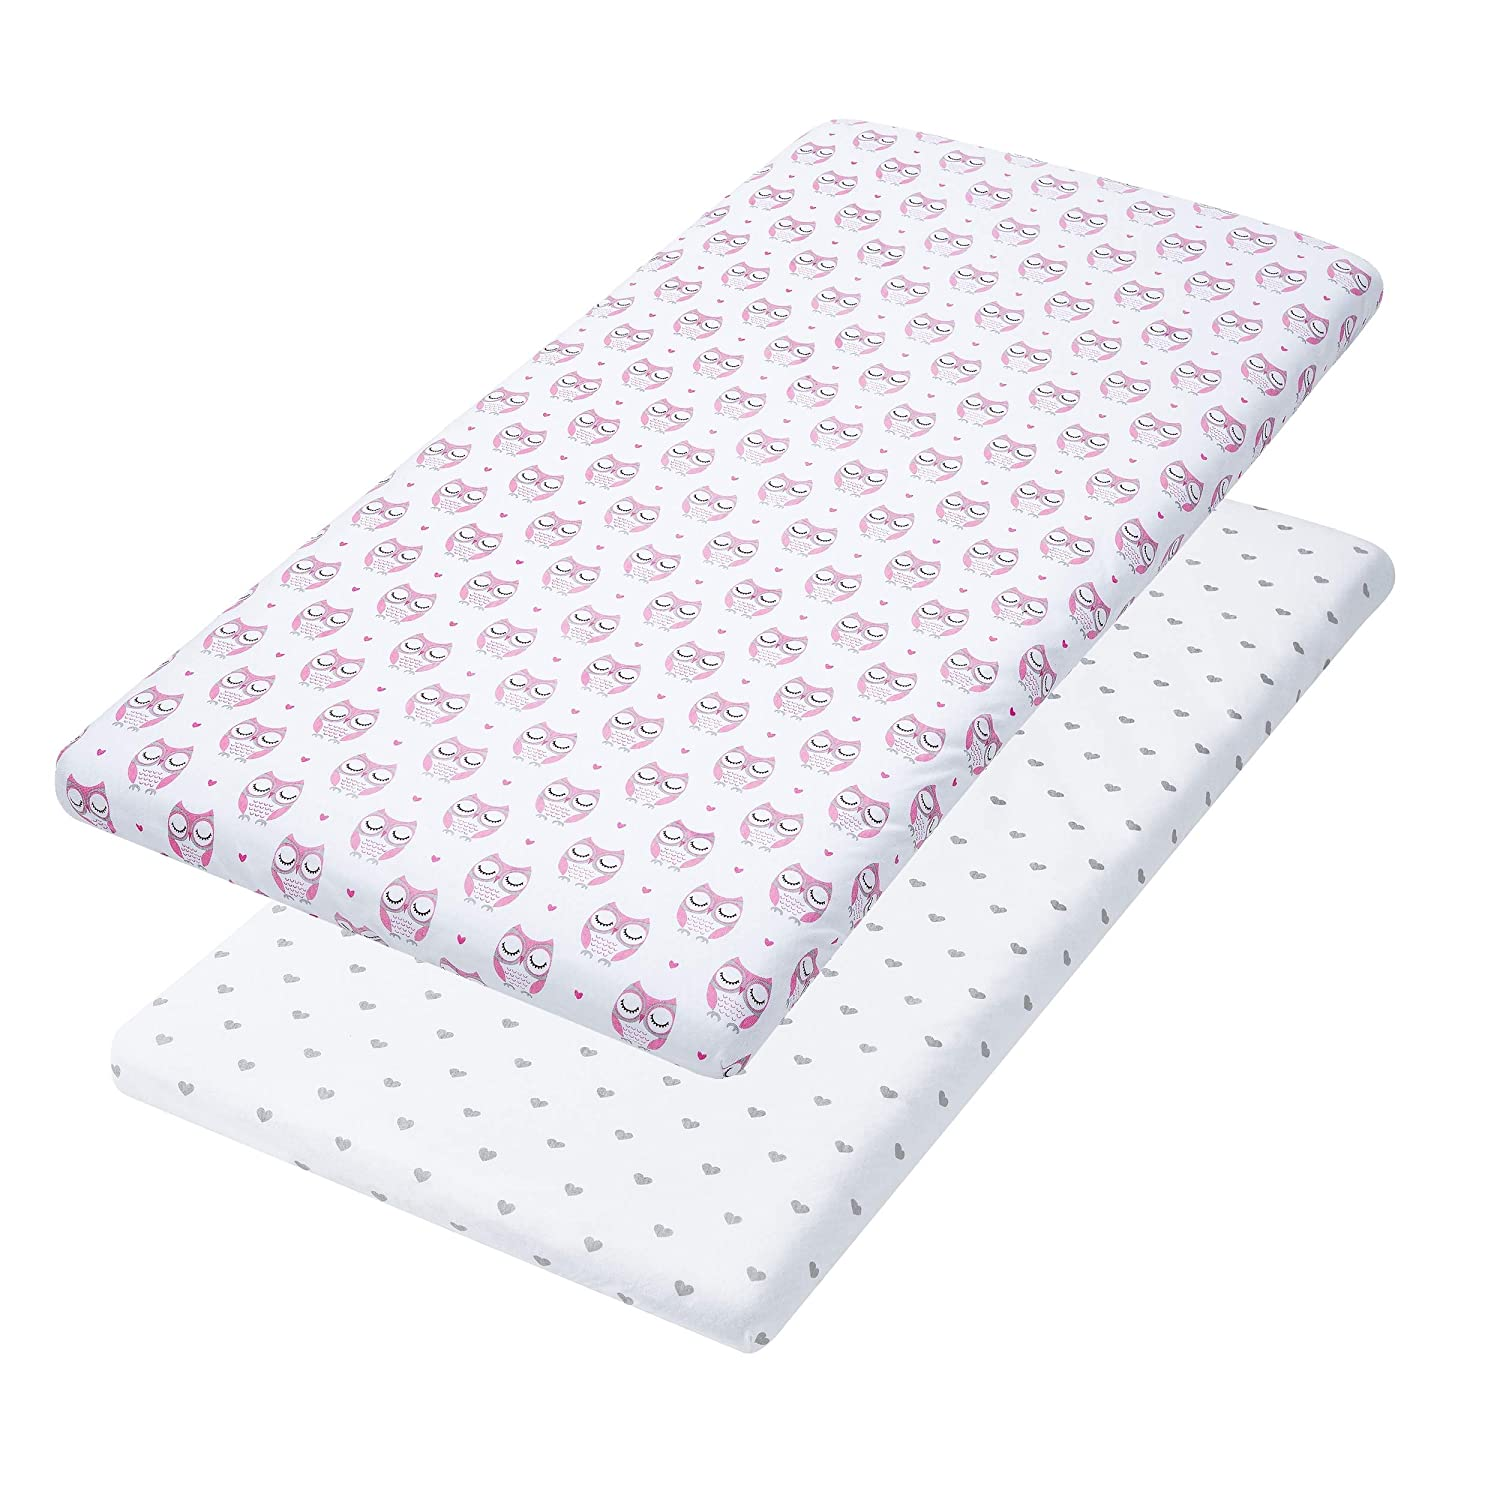 2 Pack Pink Owls /& Hearts Fitted Cotton Cradle Cover Leakproof Bassinet Sheets